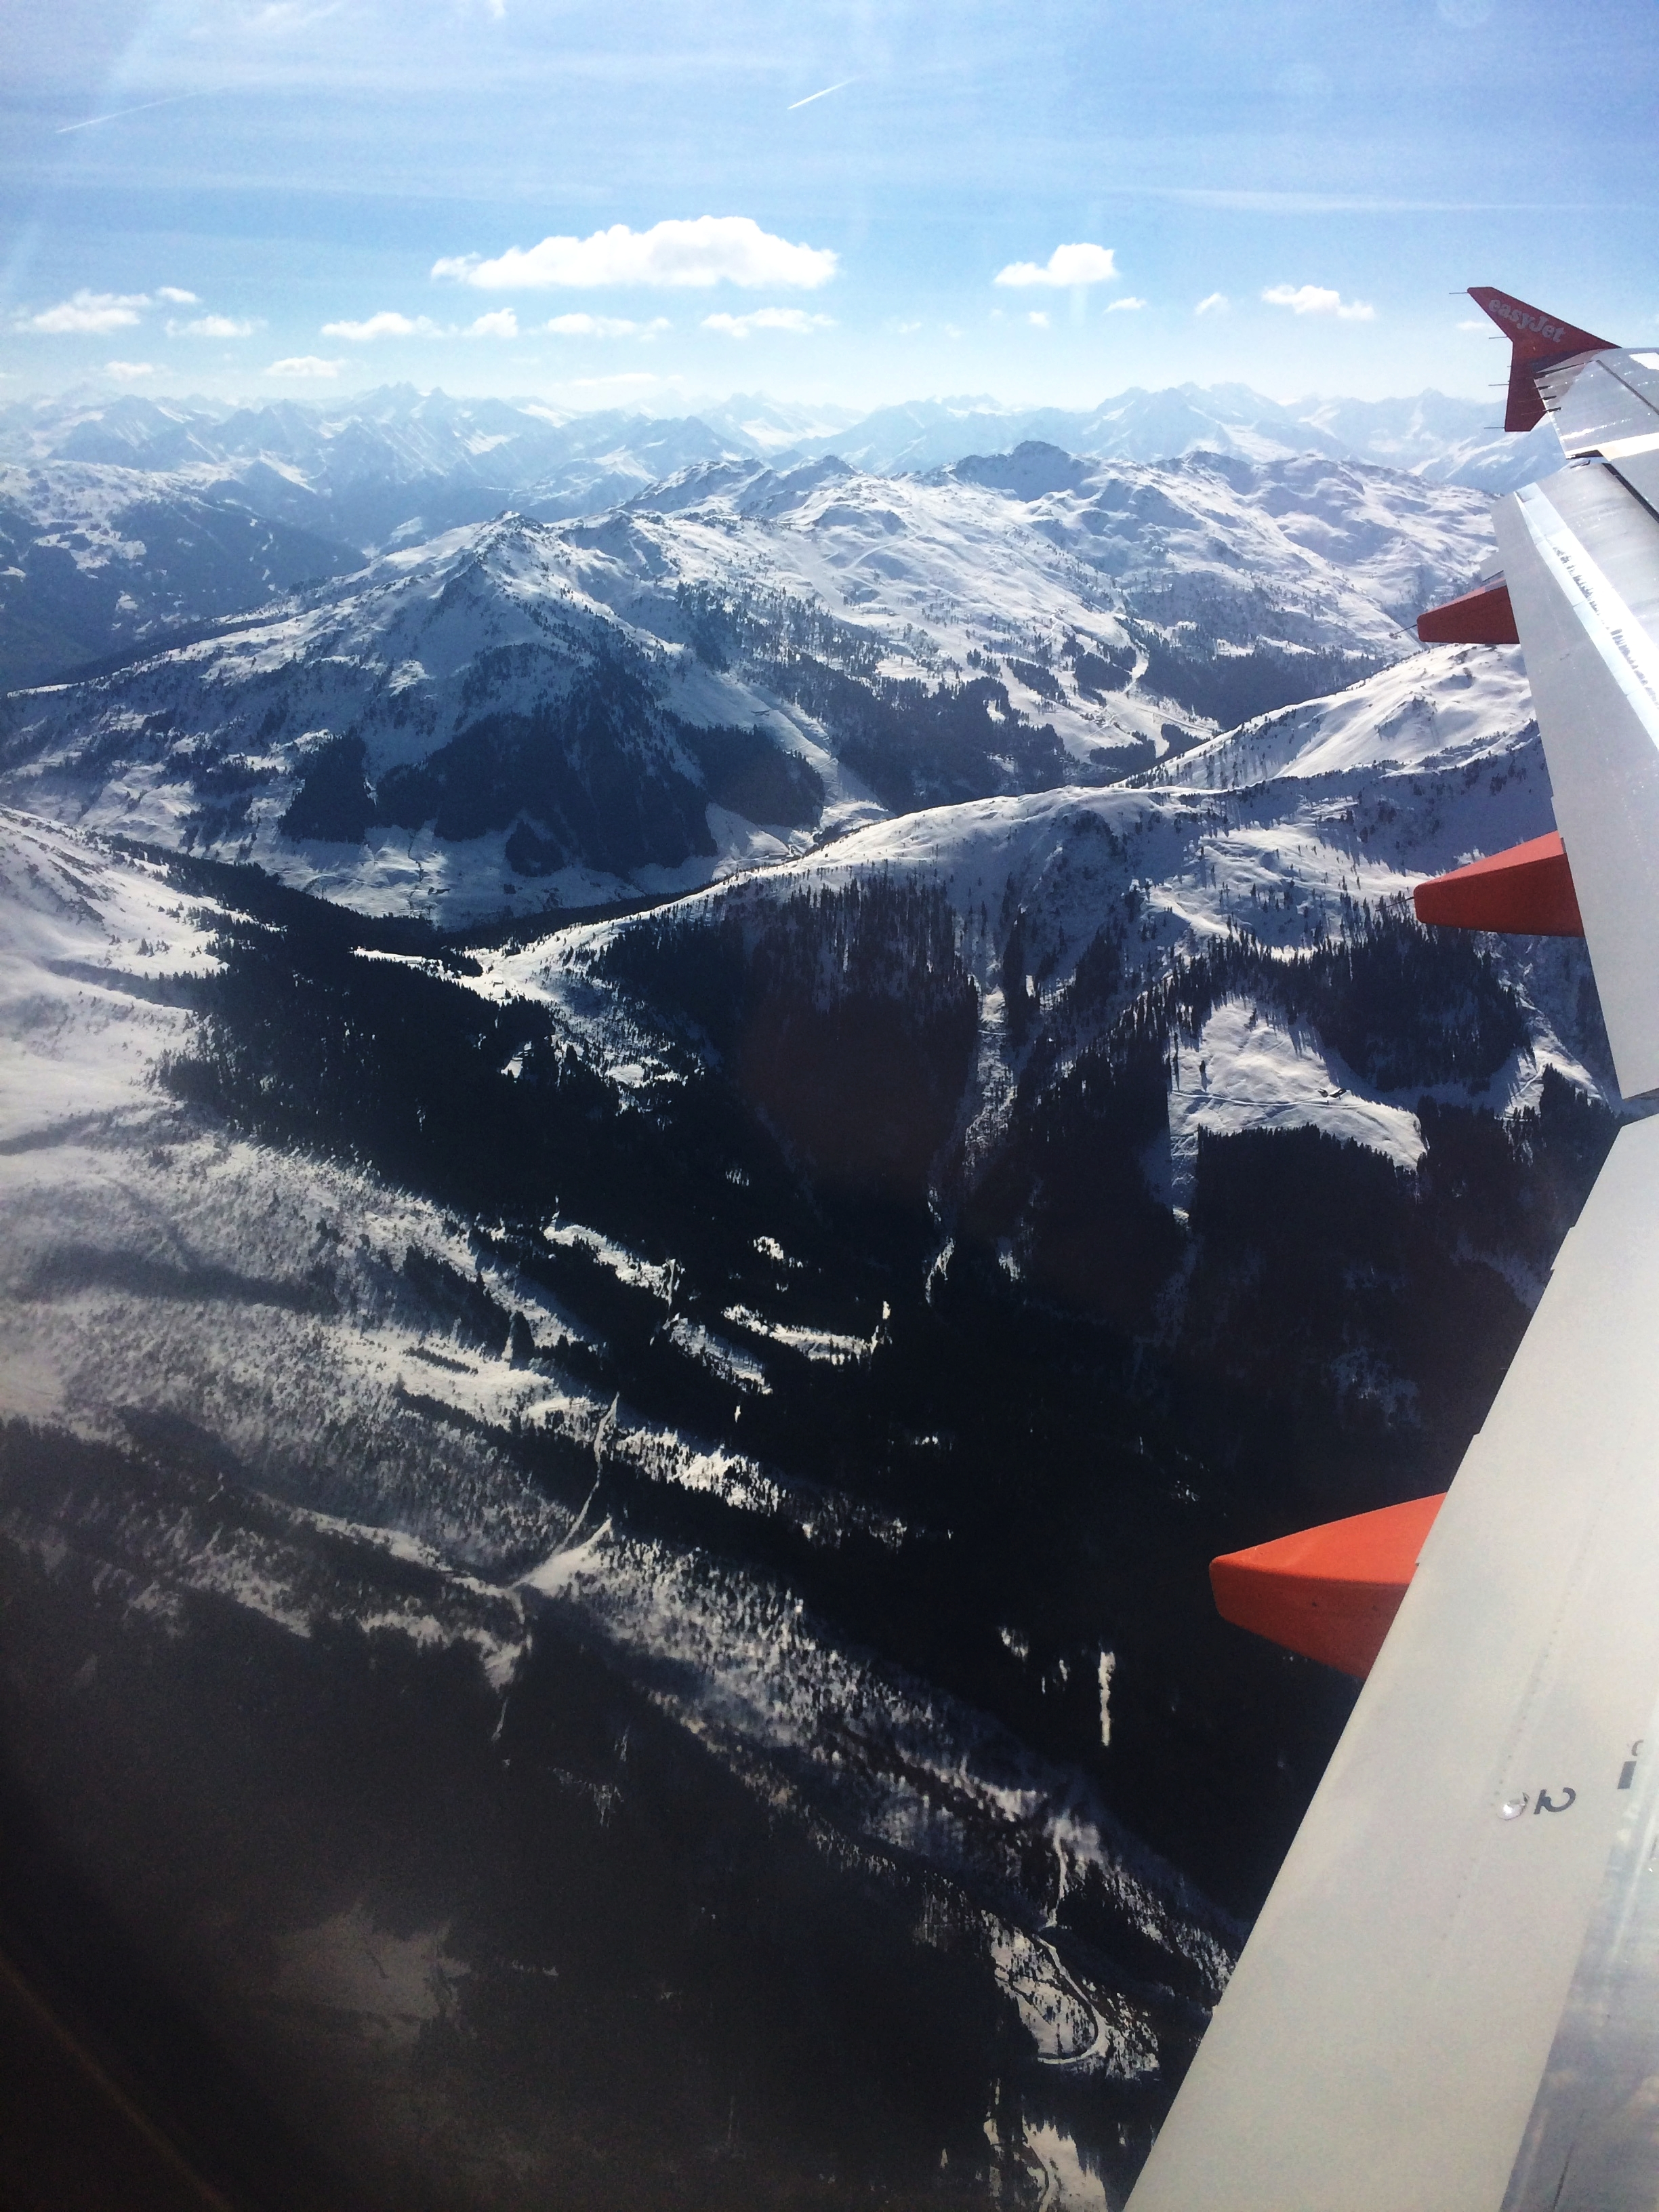 The view from the airplane on the way to Innsbruck, Austria.